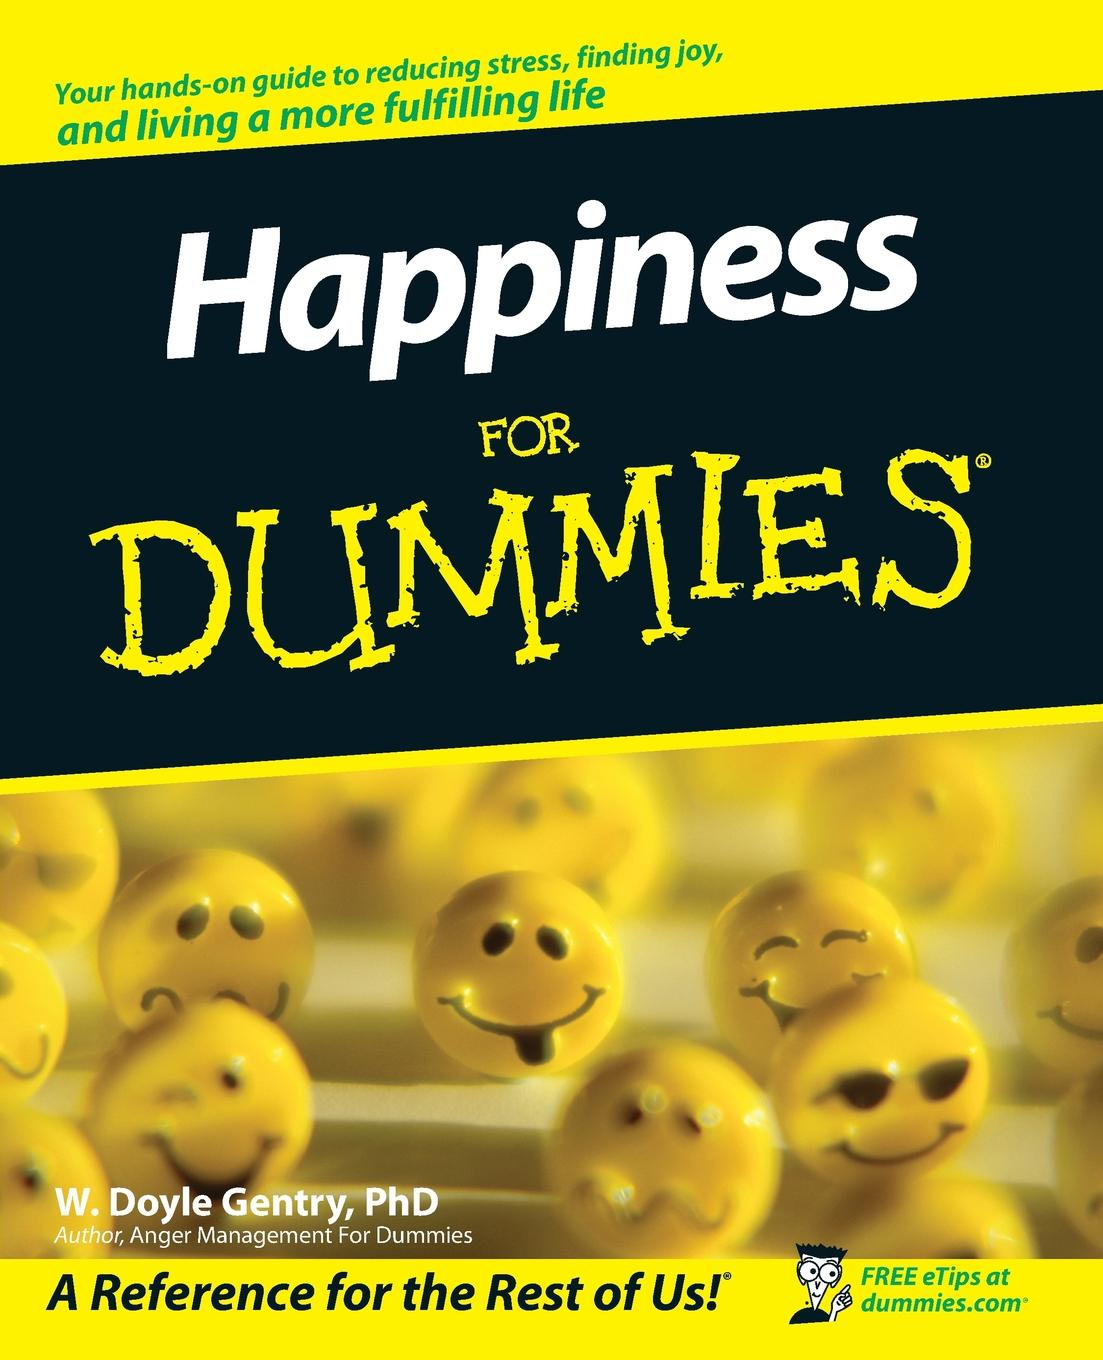 W. Doyle Gentry Happiness for Dummies